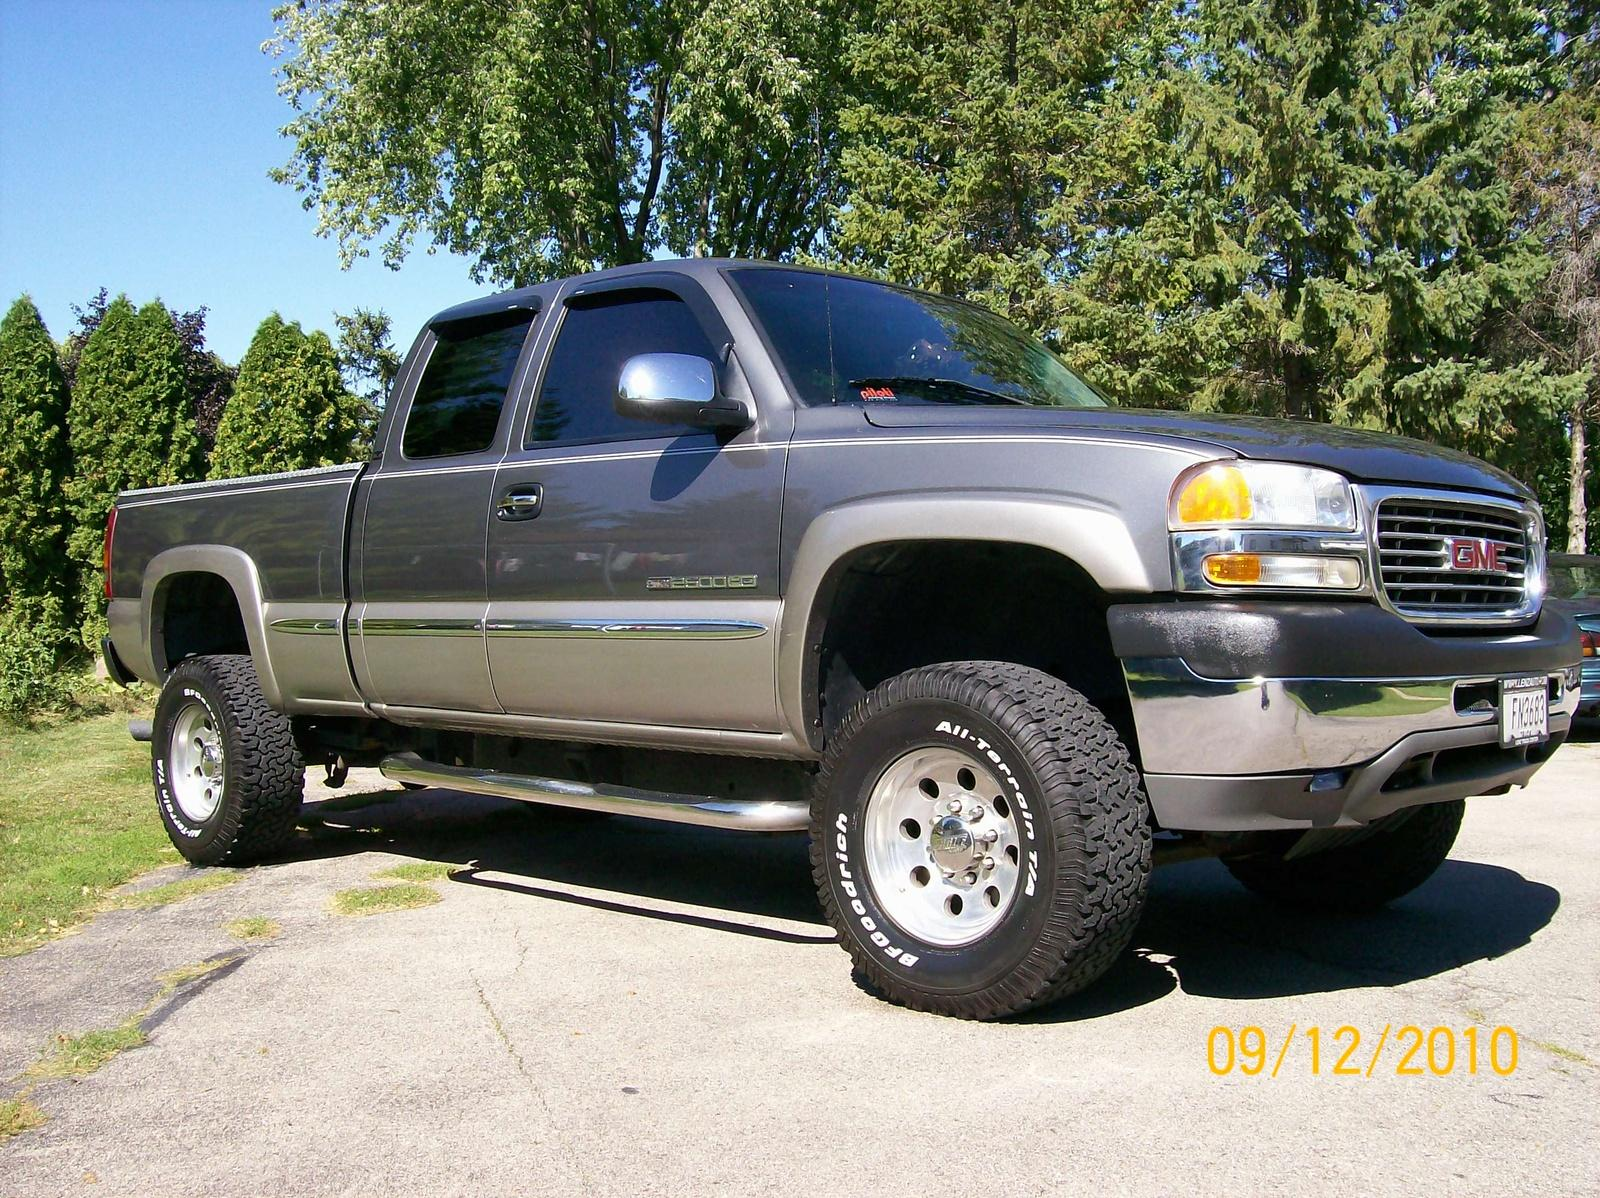 2001 gmc sierra 2500 information and photos zombiedrive. Black Bedroom Furniture Sets. Home Design Ideas